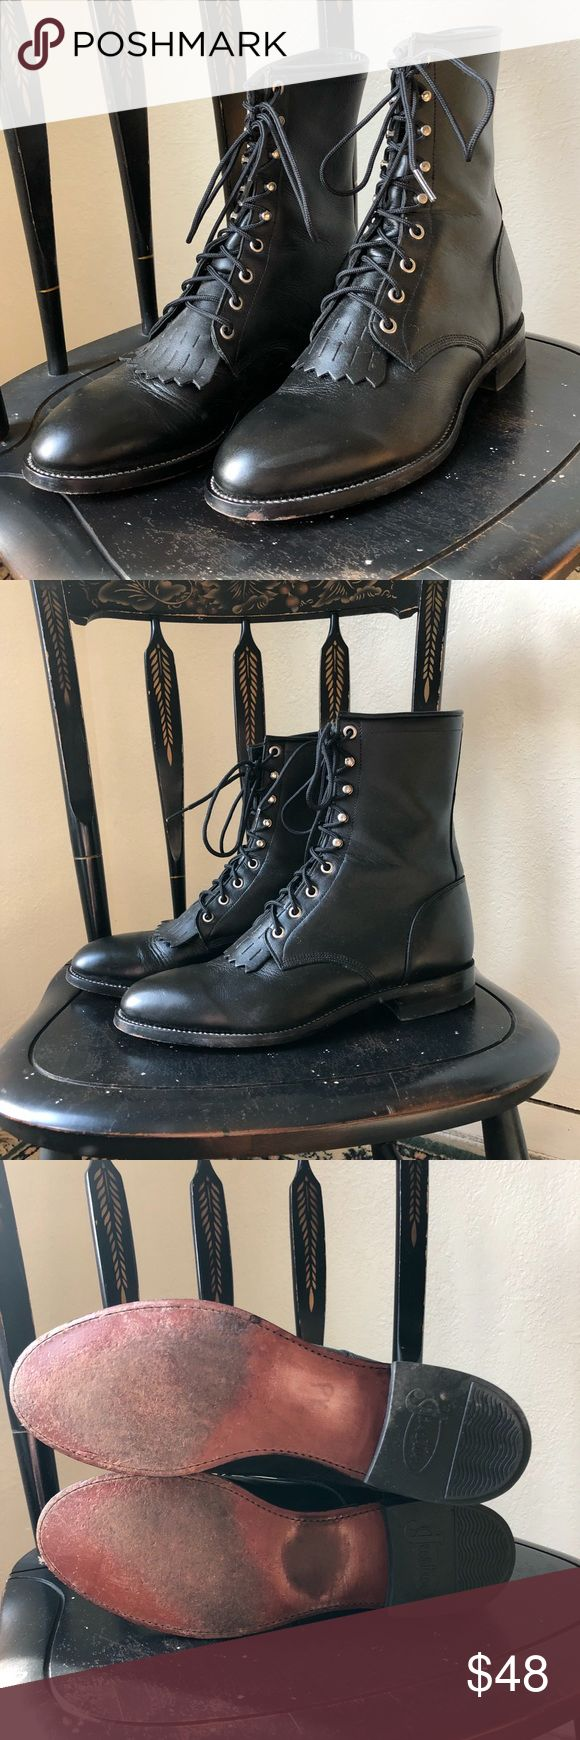 Lace up western Justin black leather roper boot So sleek black leather lace up vintage Justin roper boots in men's 8.5, women's 10.5 please message with any questions! Justin Boots Shoes Lace Up Boots